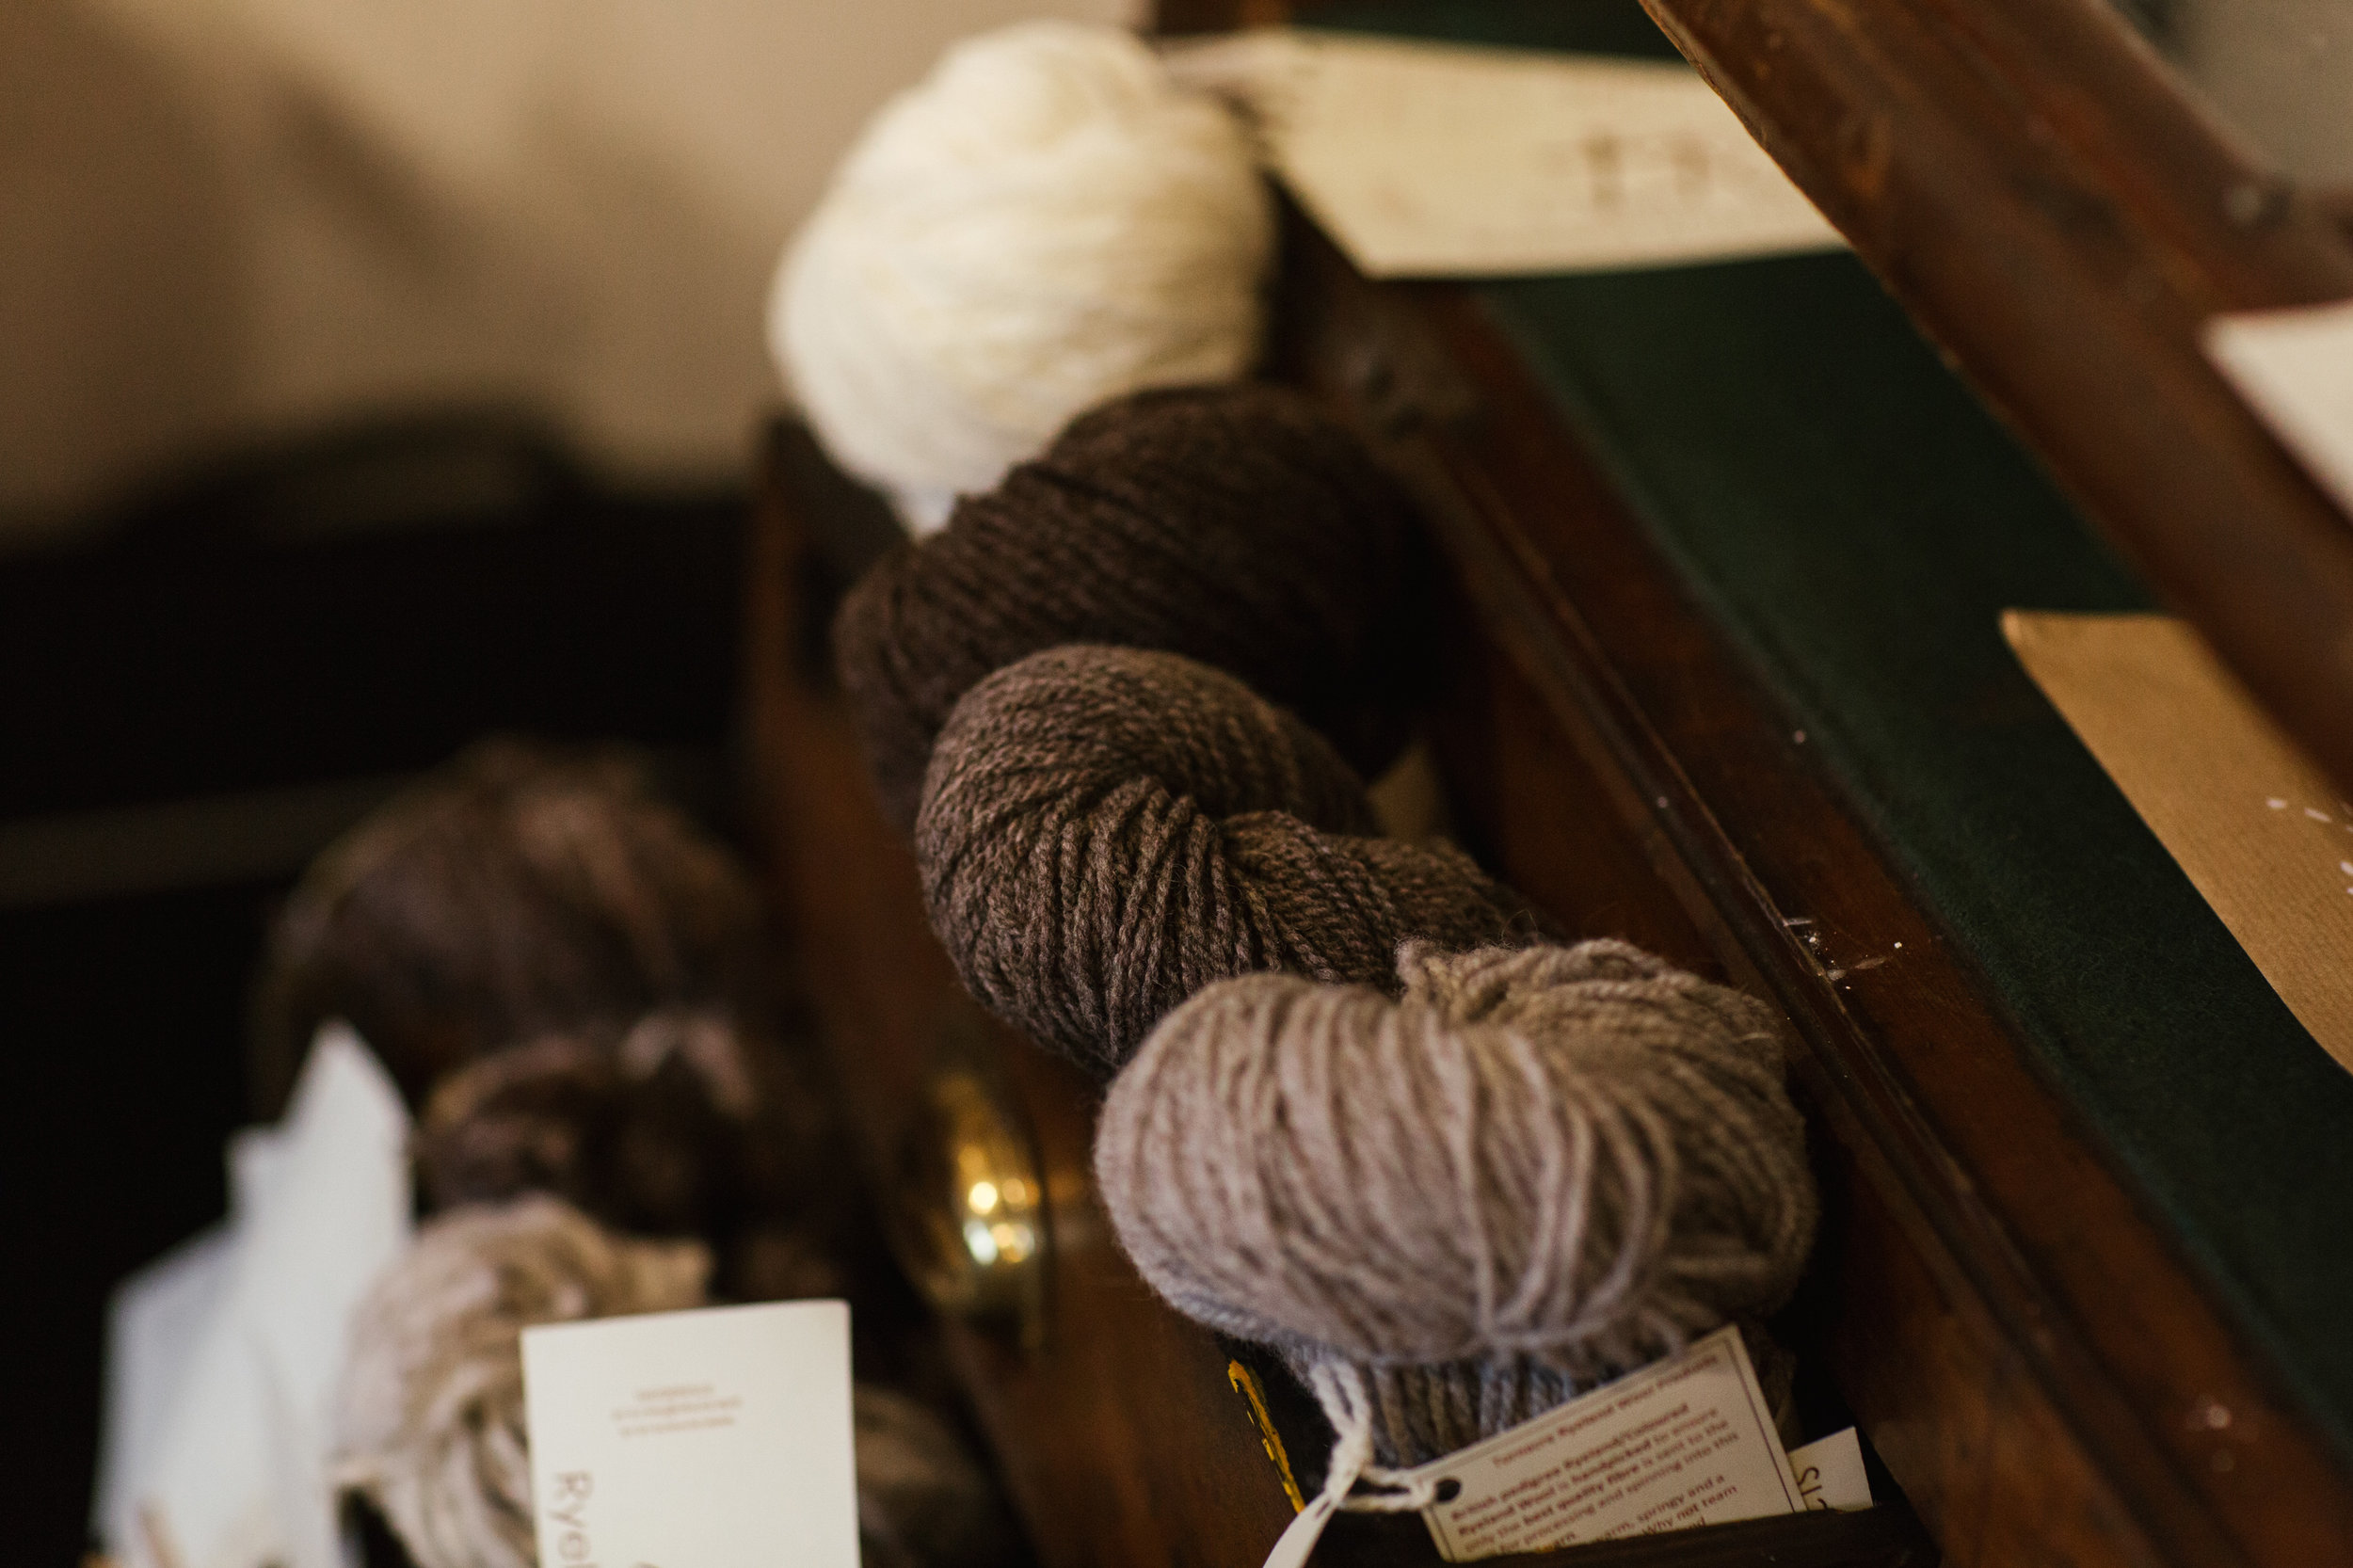 Local Ryeland wool from Turnacre